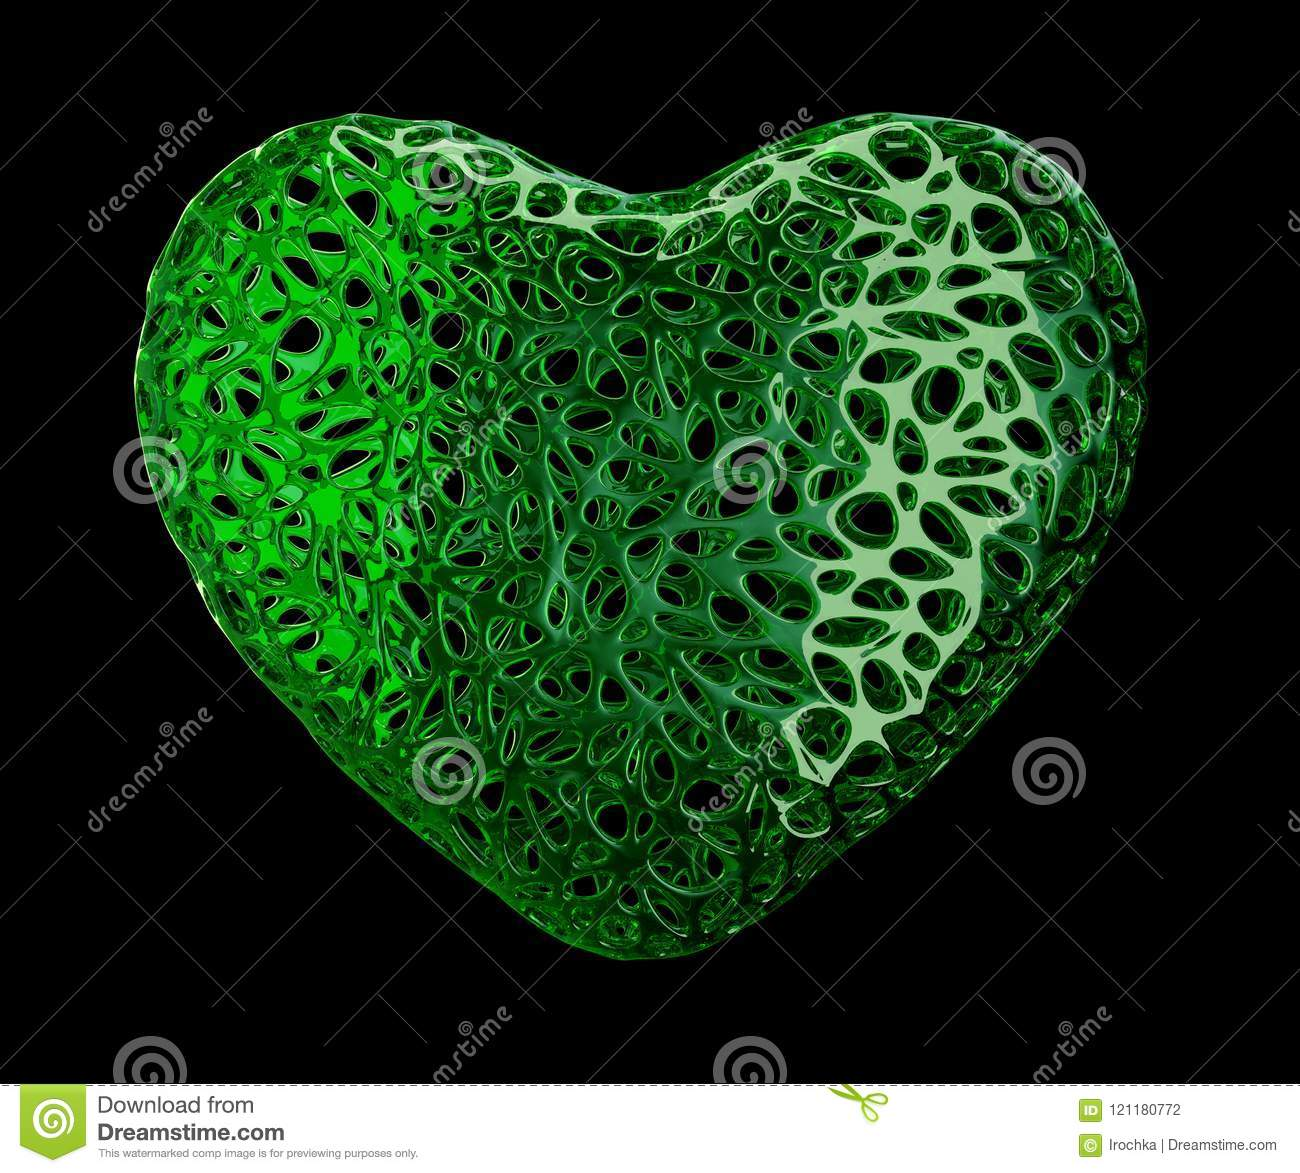 Heart made of green plastic with abstract holes isolated on black background. 3d